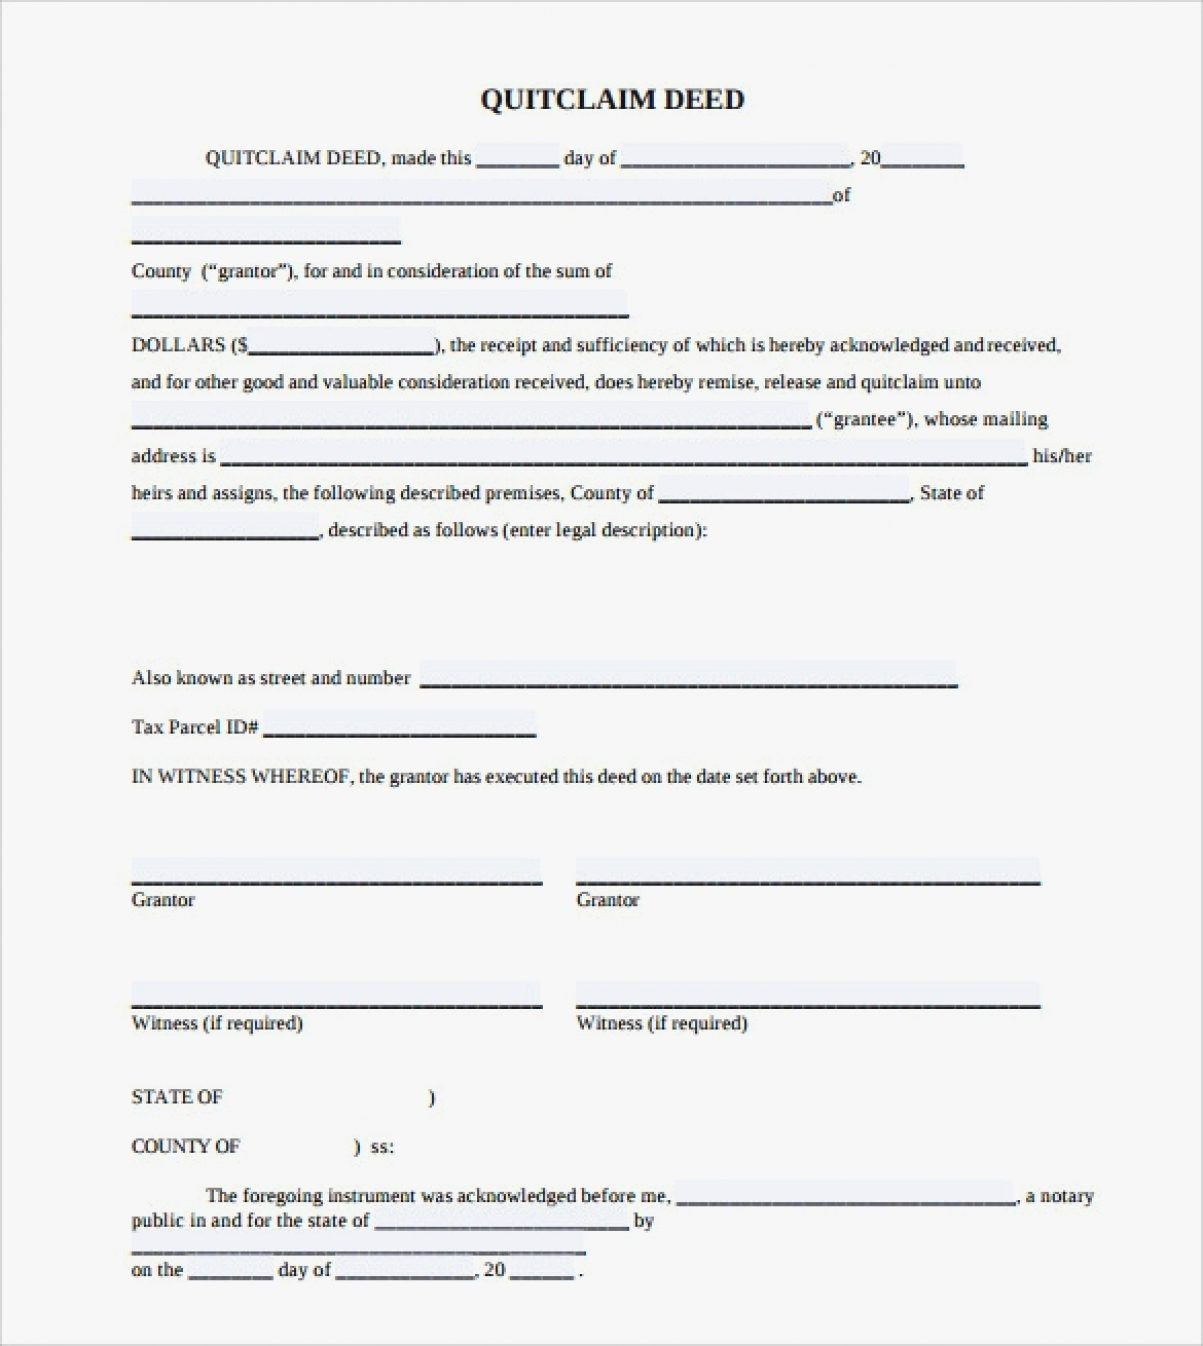 Quick Claim Deed Form Florida Nice Quit Claim Deed Florida Form Business Templates Blank Well Include